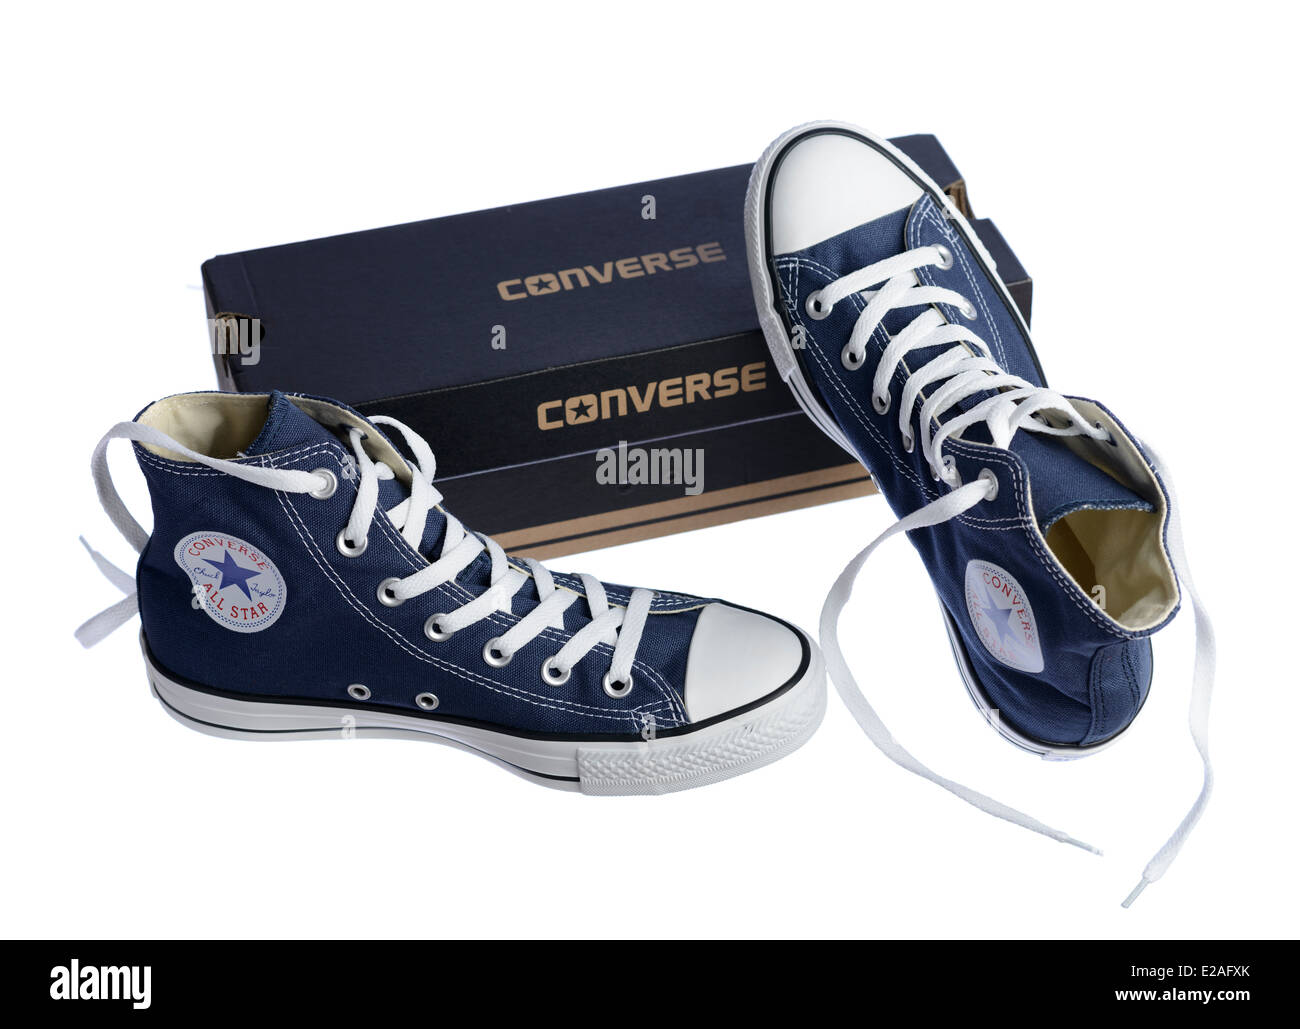 Blue Converse Chuck Taylor All Star shoe pair and box Stock Photo ... 70dcf88829d